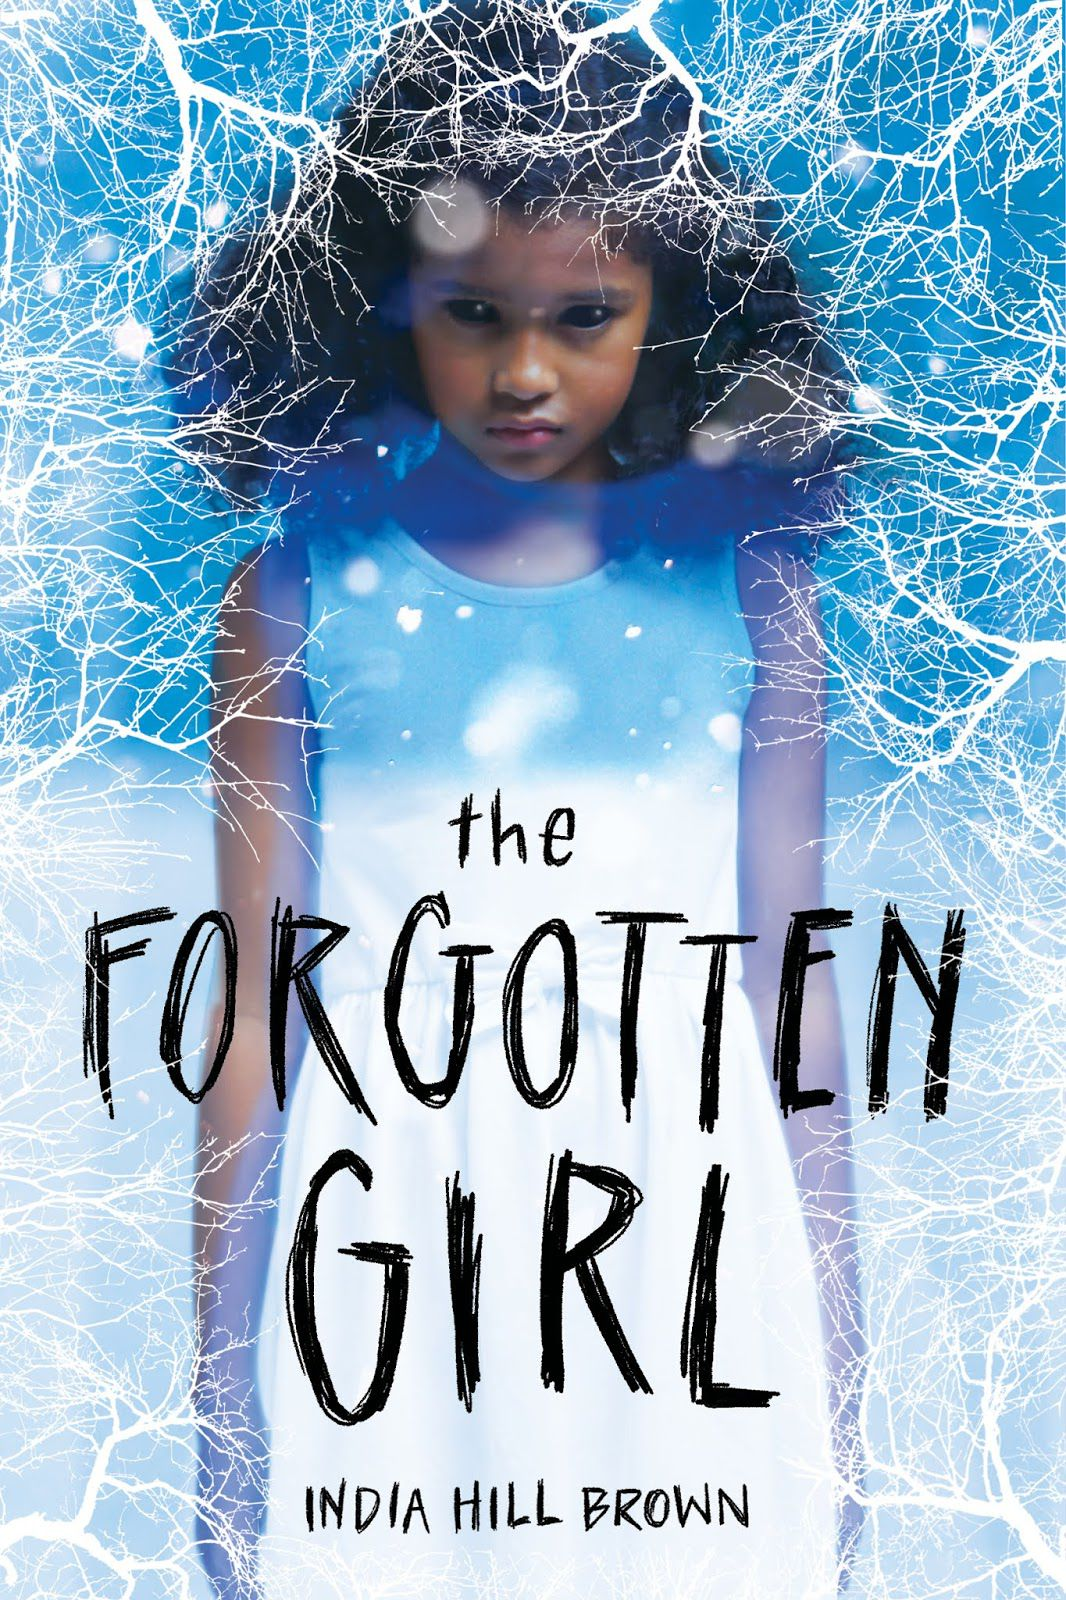 Capa do livro The Forgotten Girl